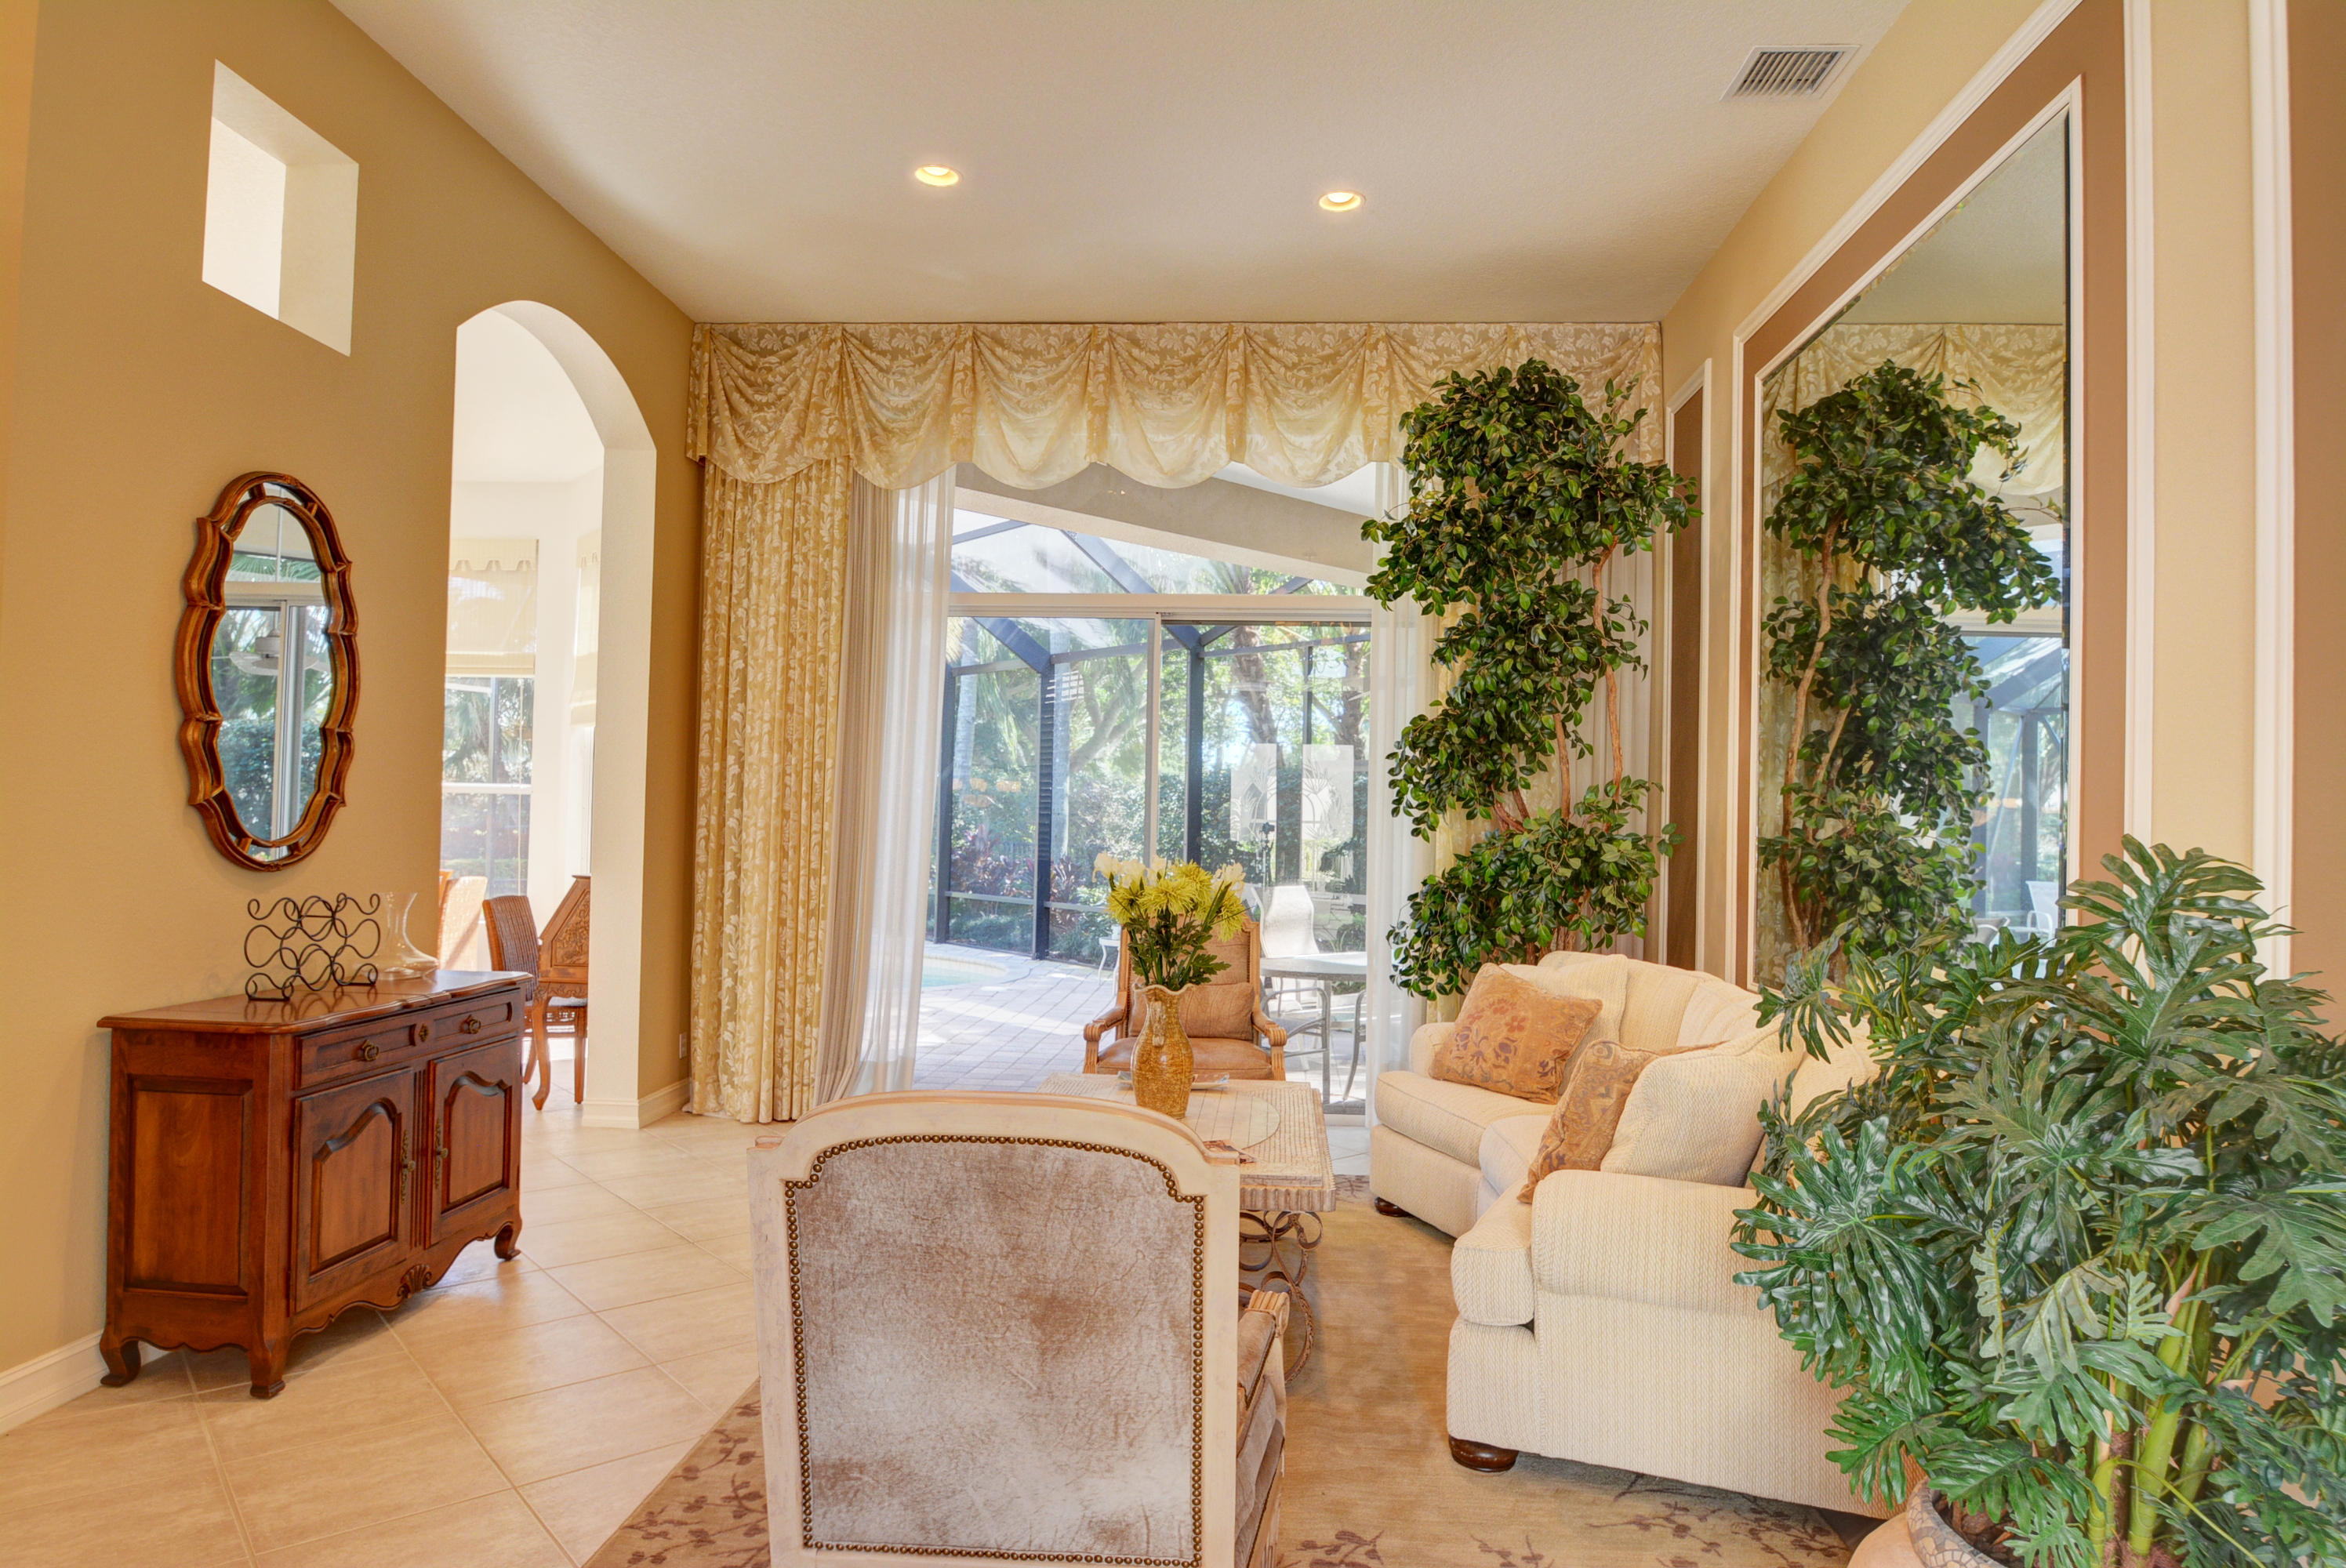 167 Orchid Cay Drive Palm Beach Gardens, FL 33418 small photo 15